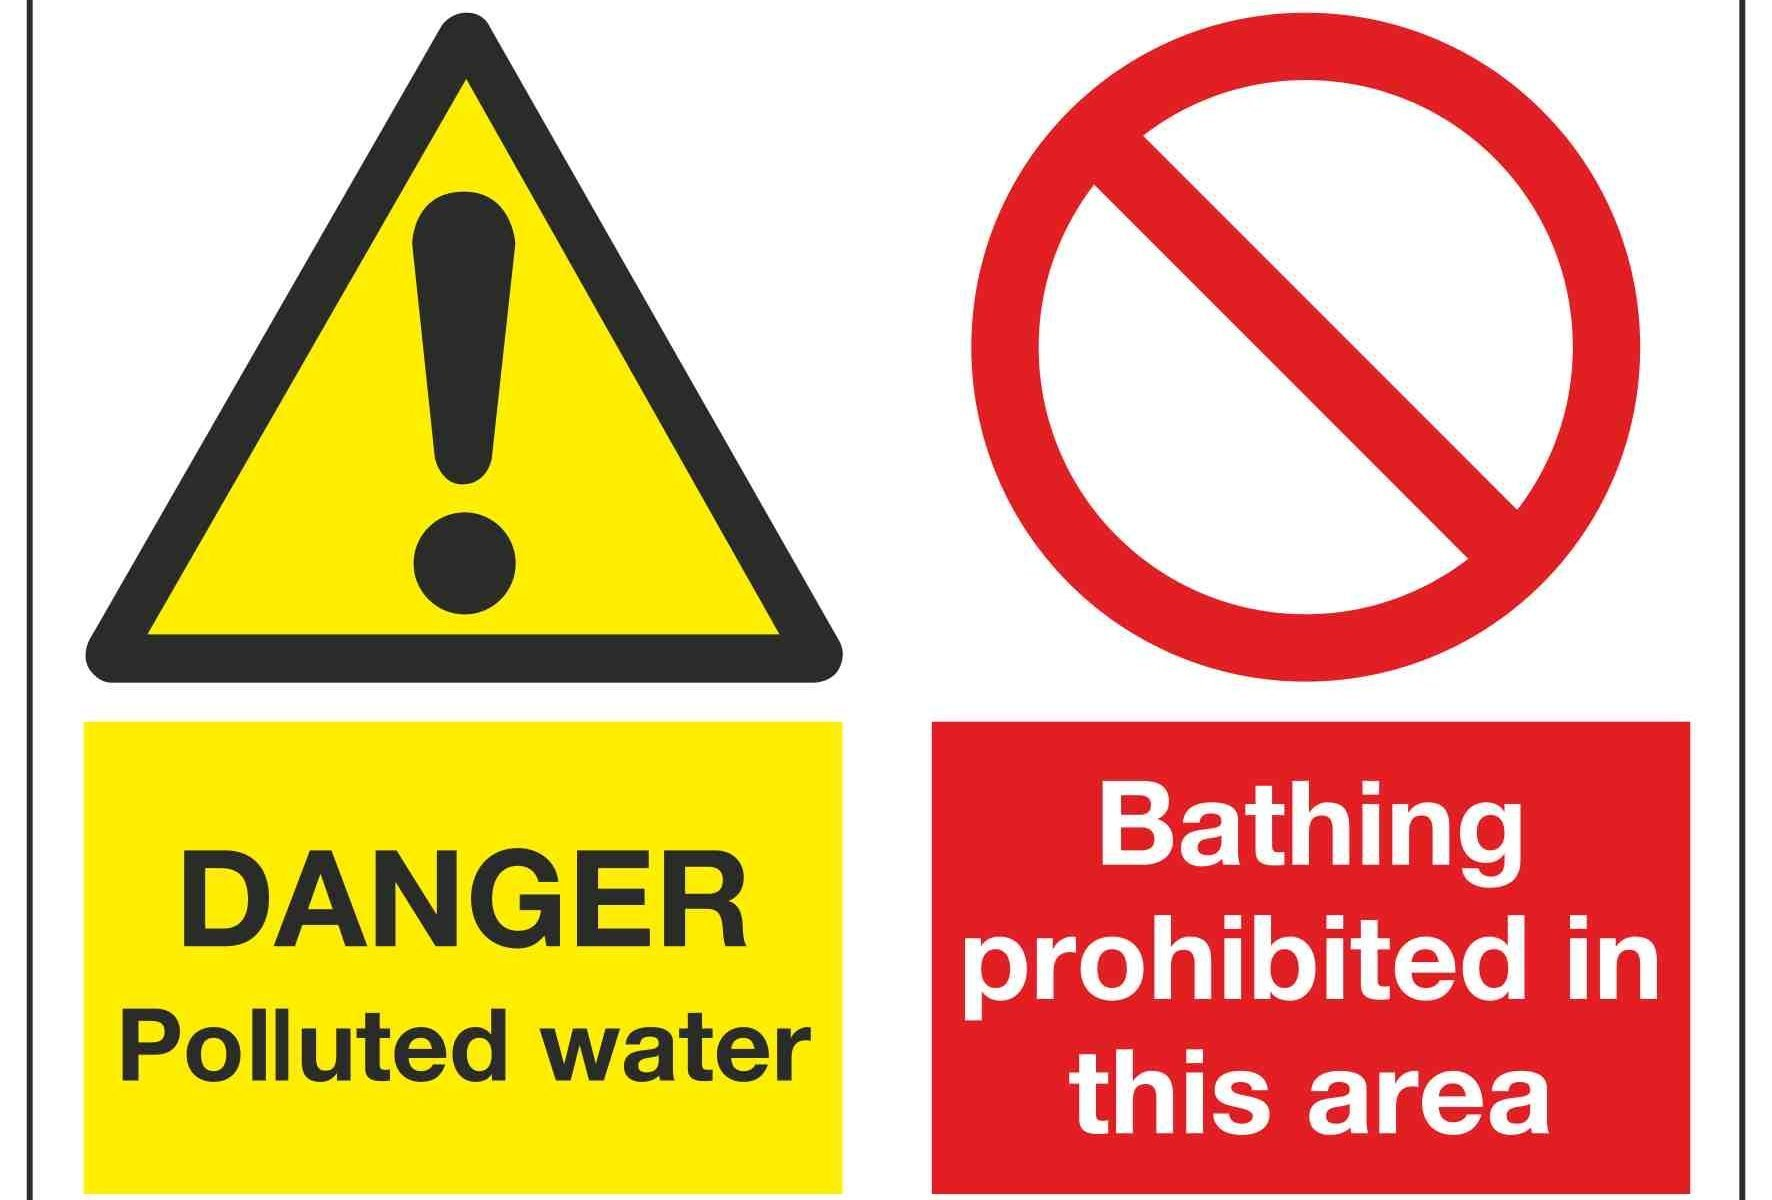 DANGER Polluted water / Bathing prohibited in this area